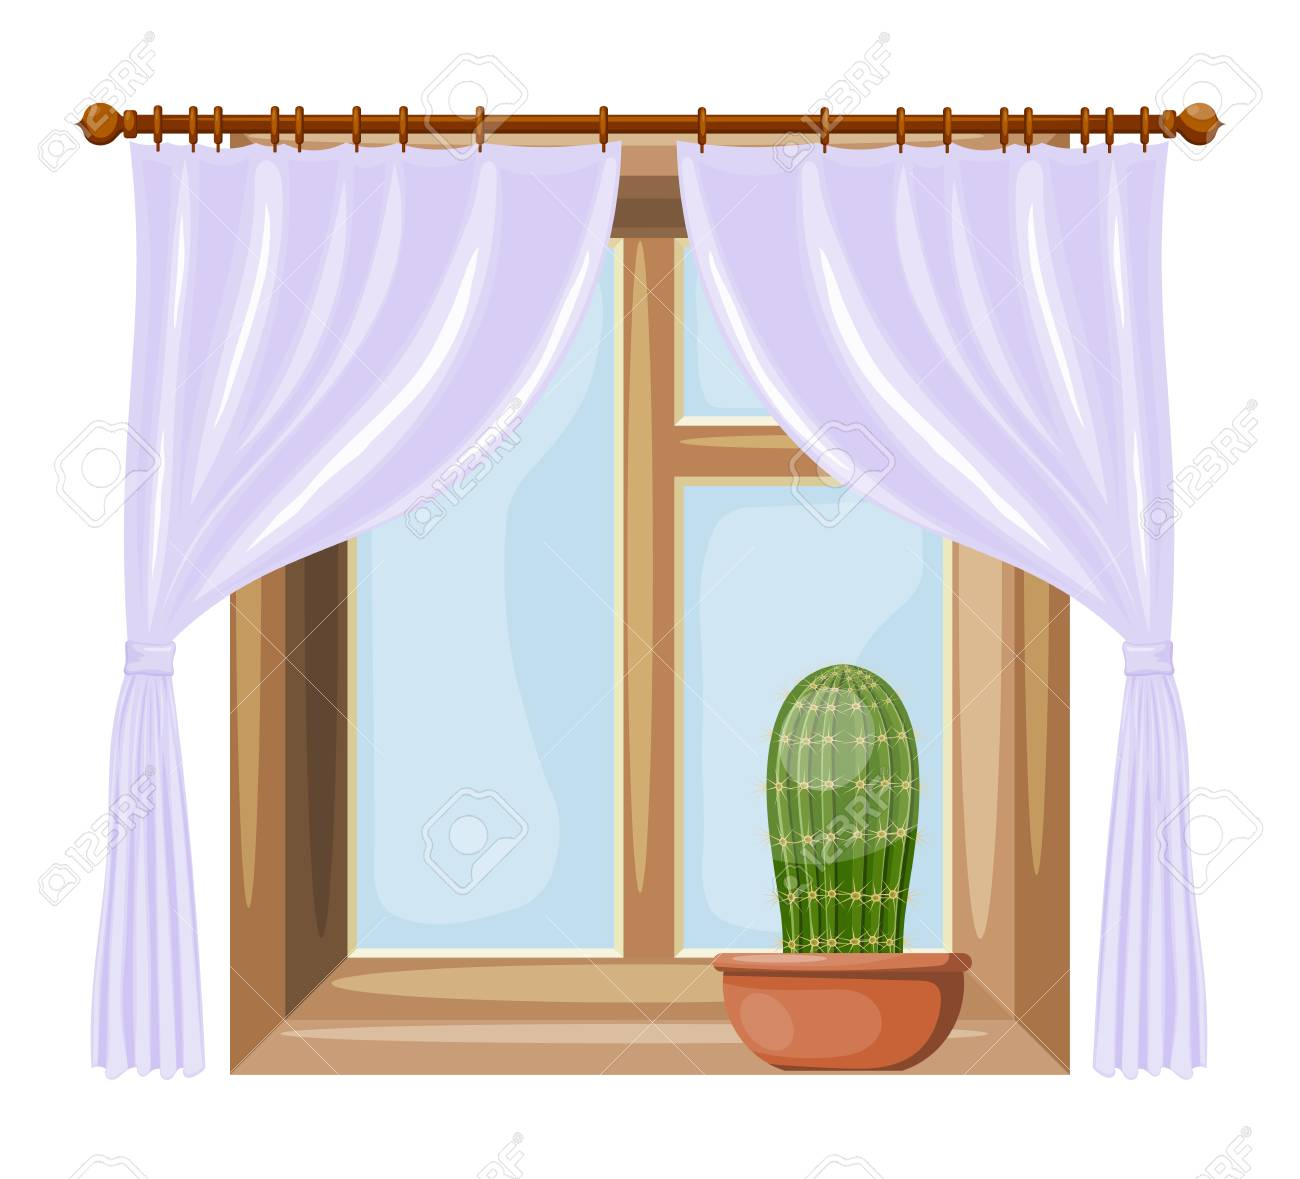 Color Image Cartoon Style Windows With Curtains On A White Background Vector Illustration Of